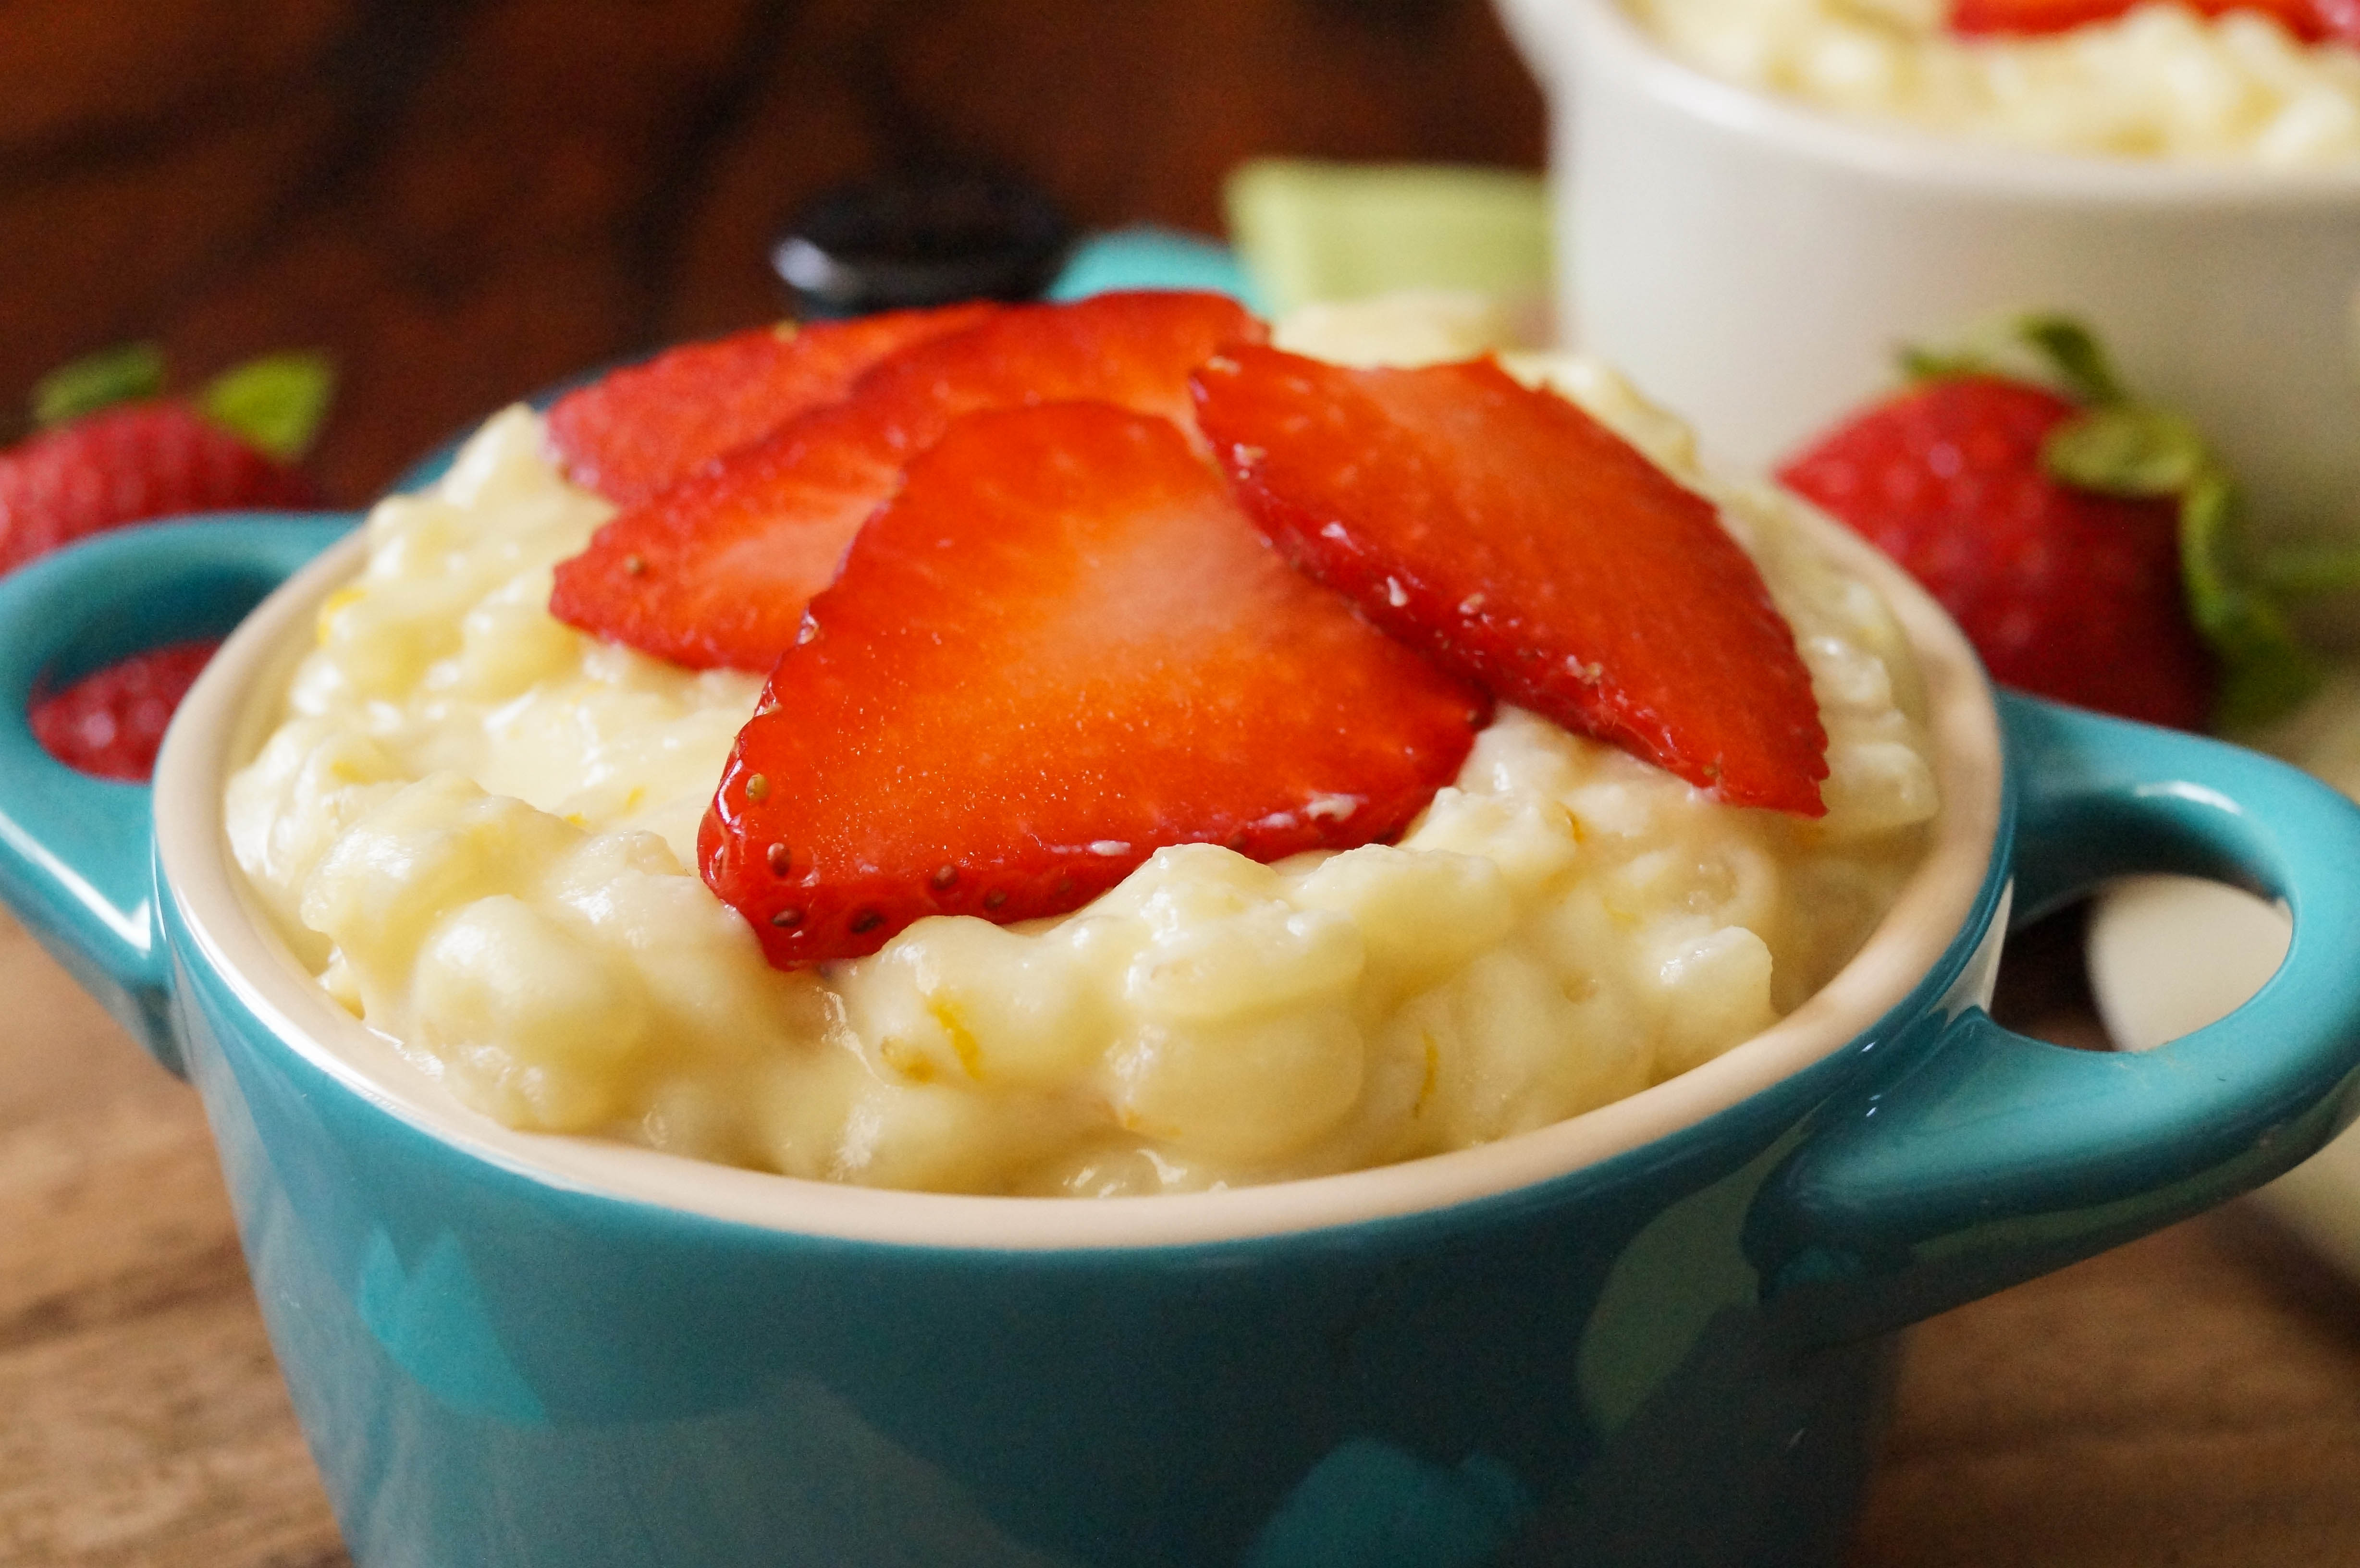 Sweet Orange Risotto with Strawberries